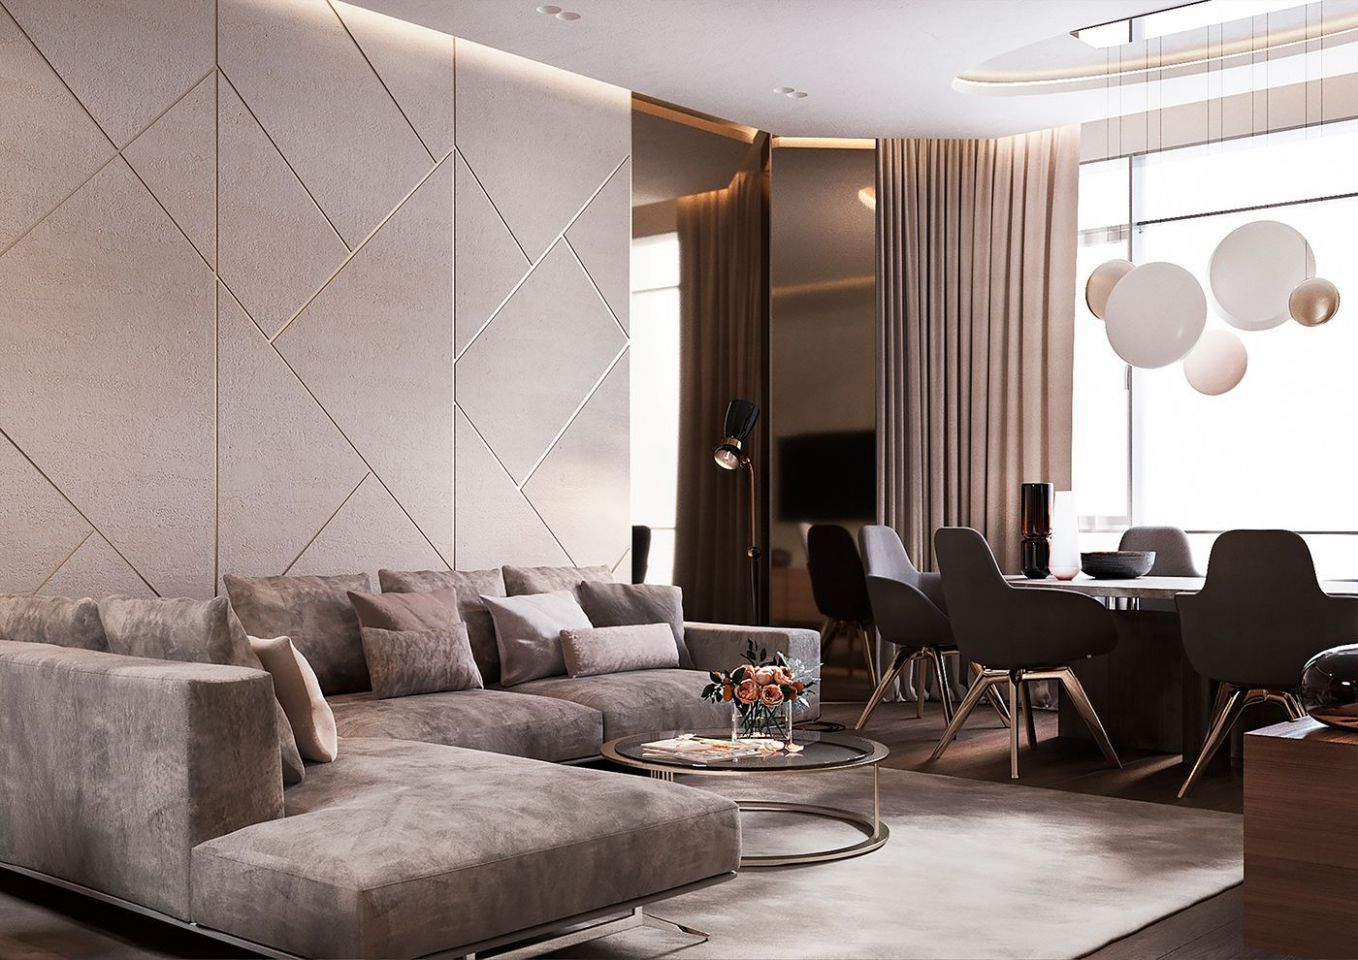 Luxury Apartment Interior Design Ideas with the Right Concept ...